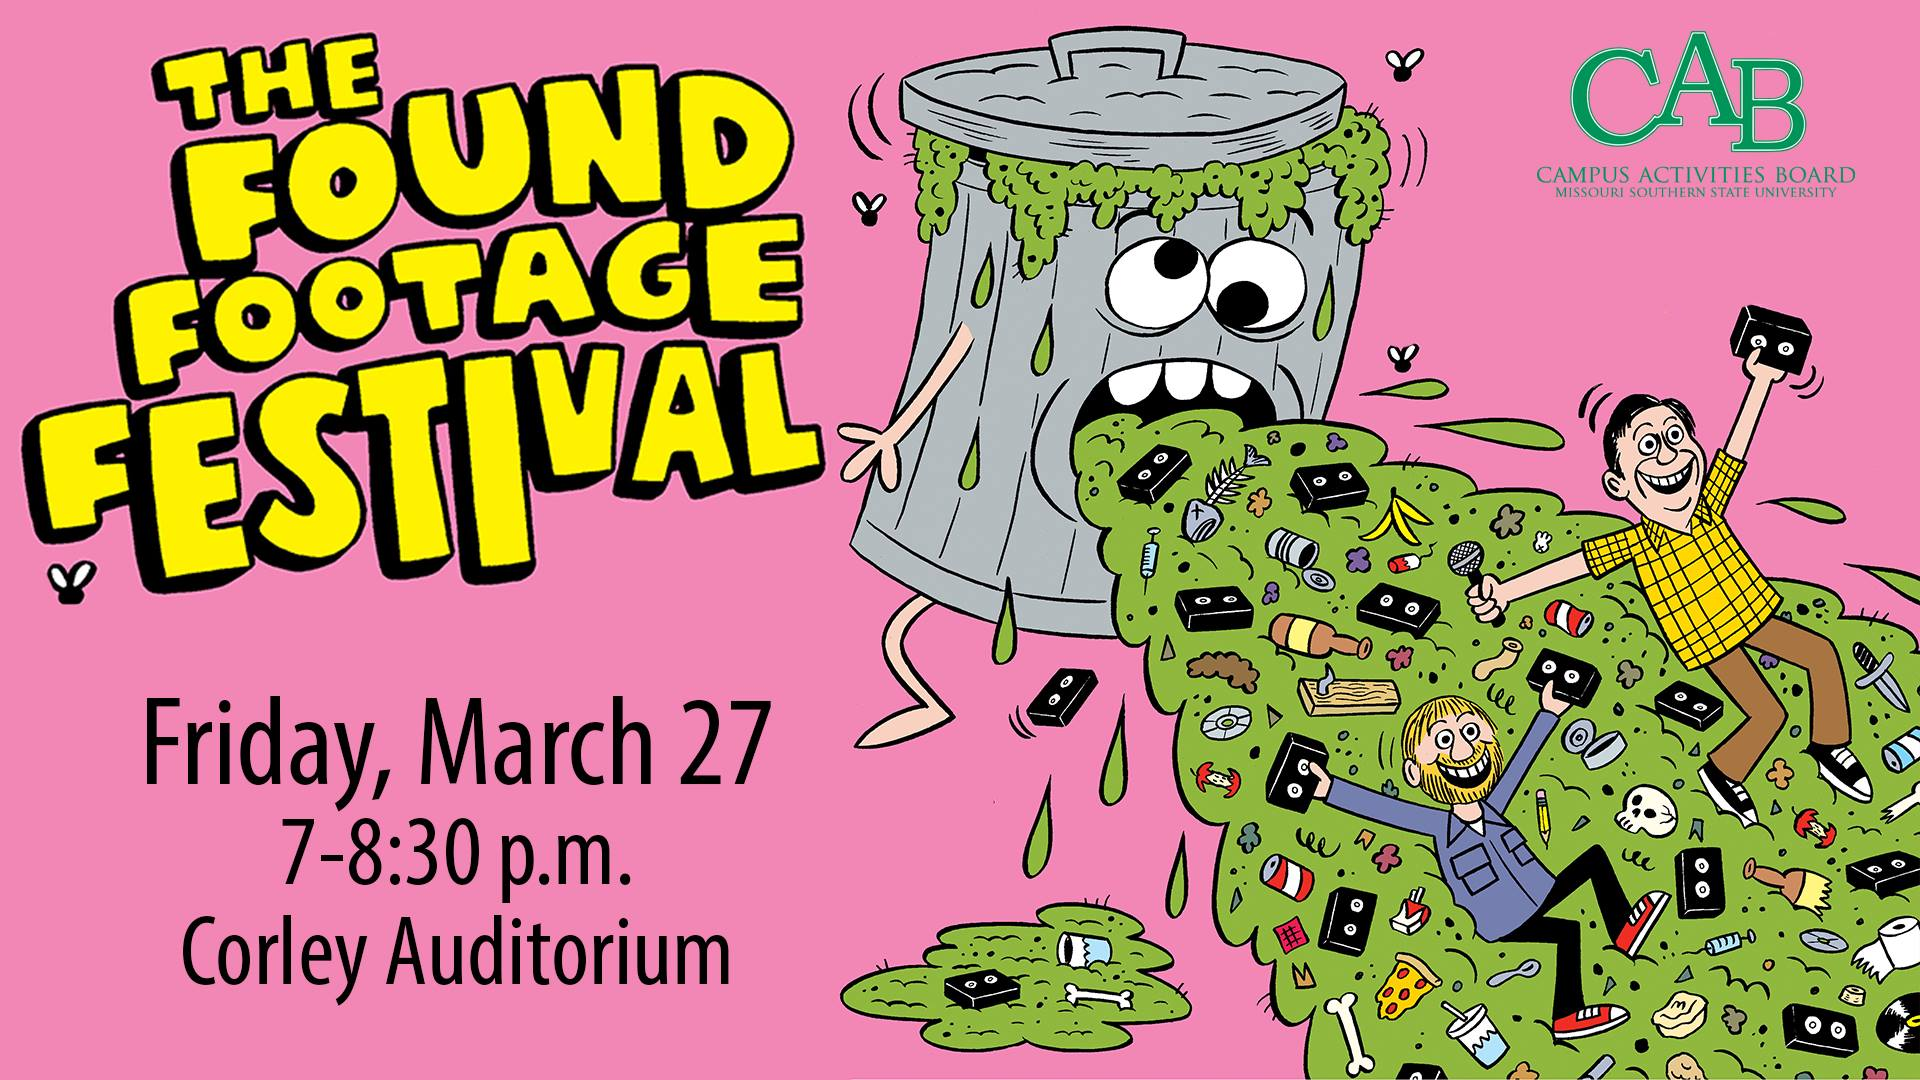 Found Footage Festival set for March 27